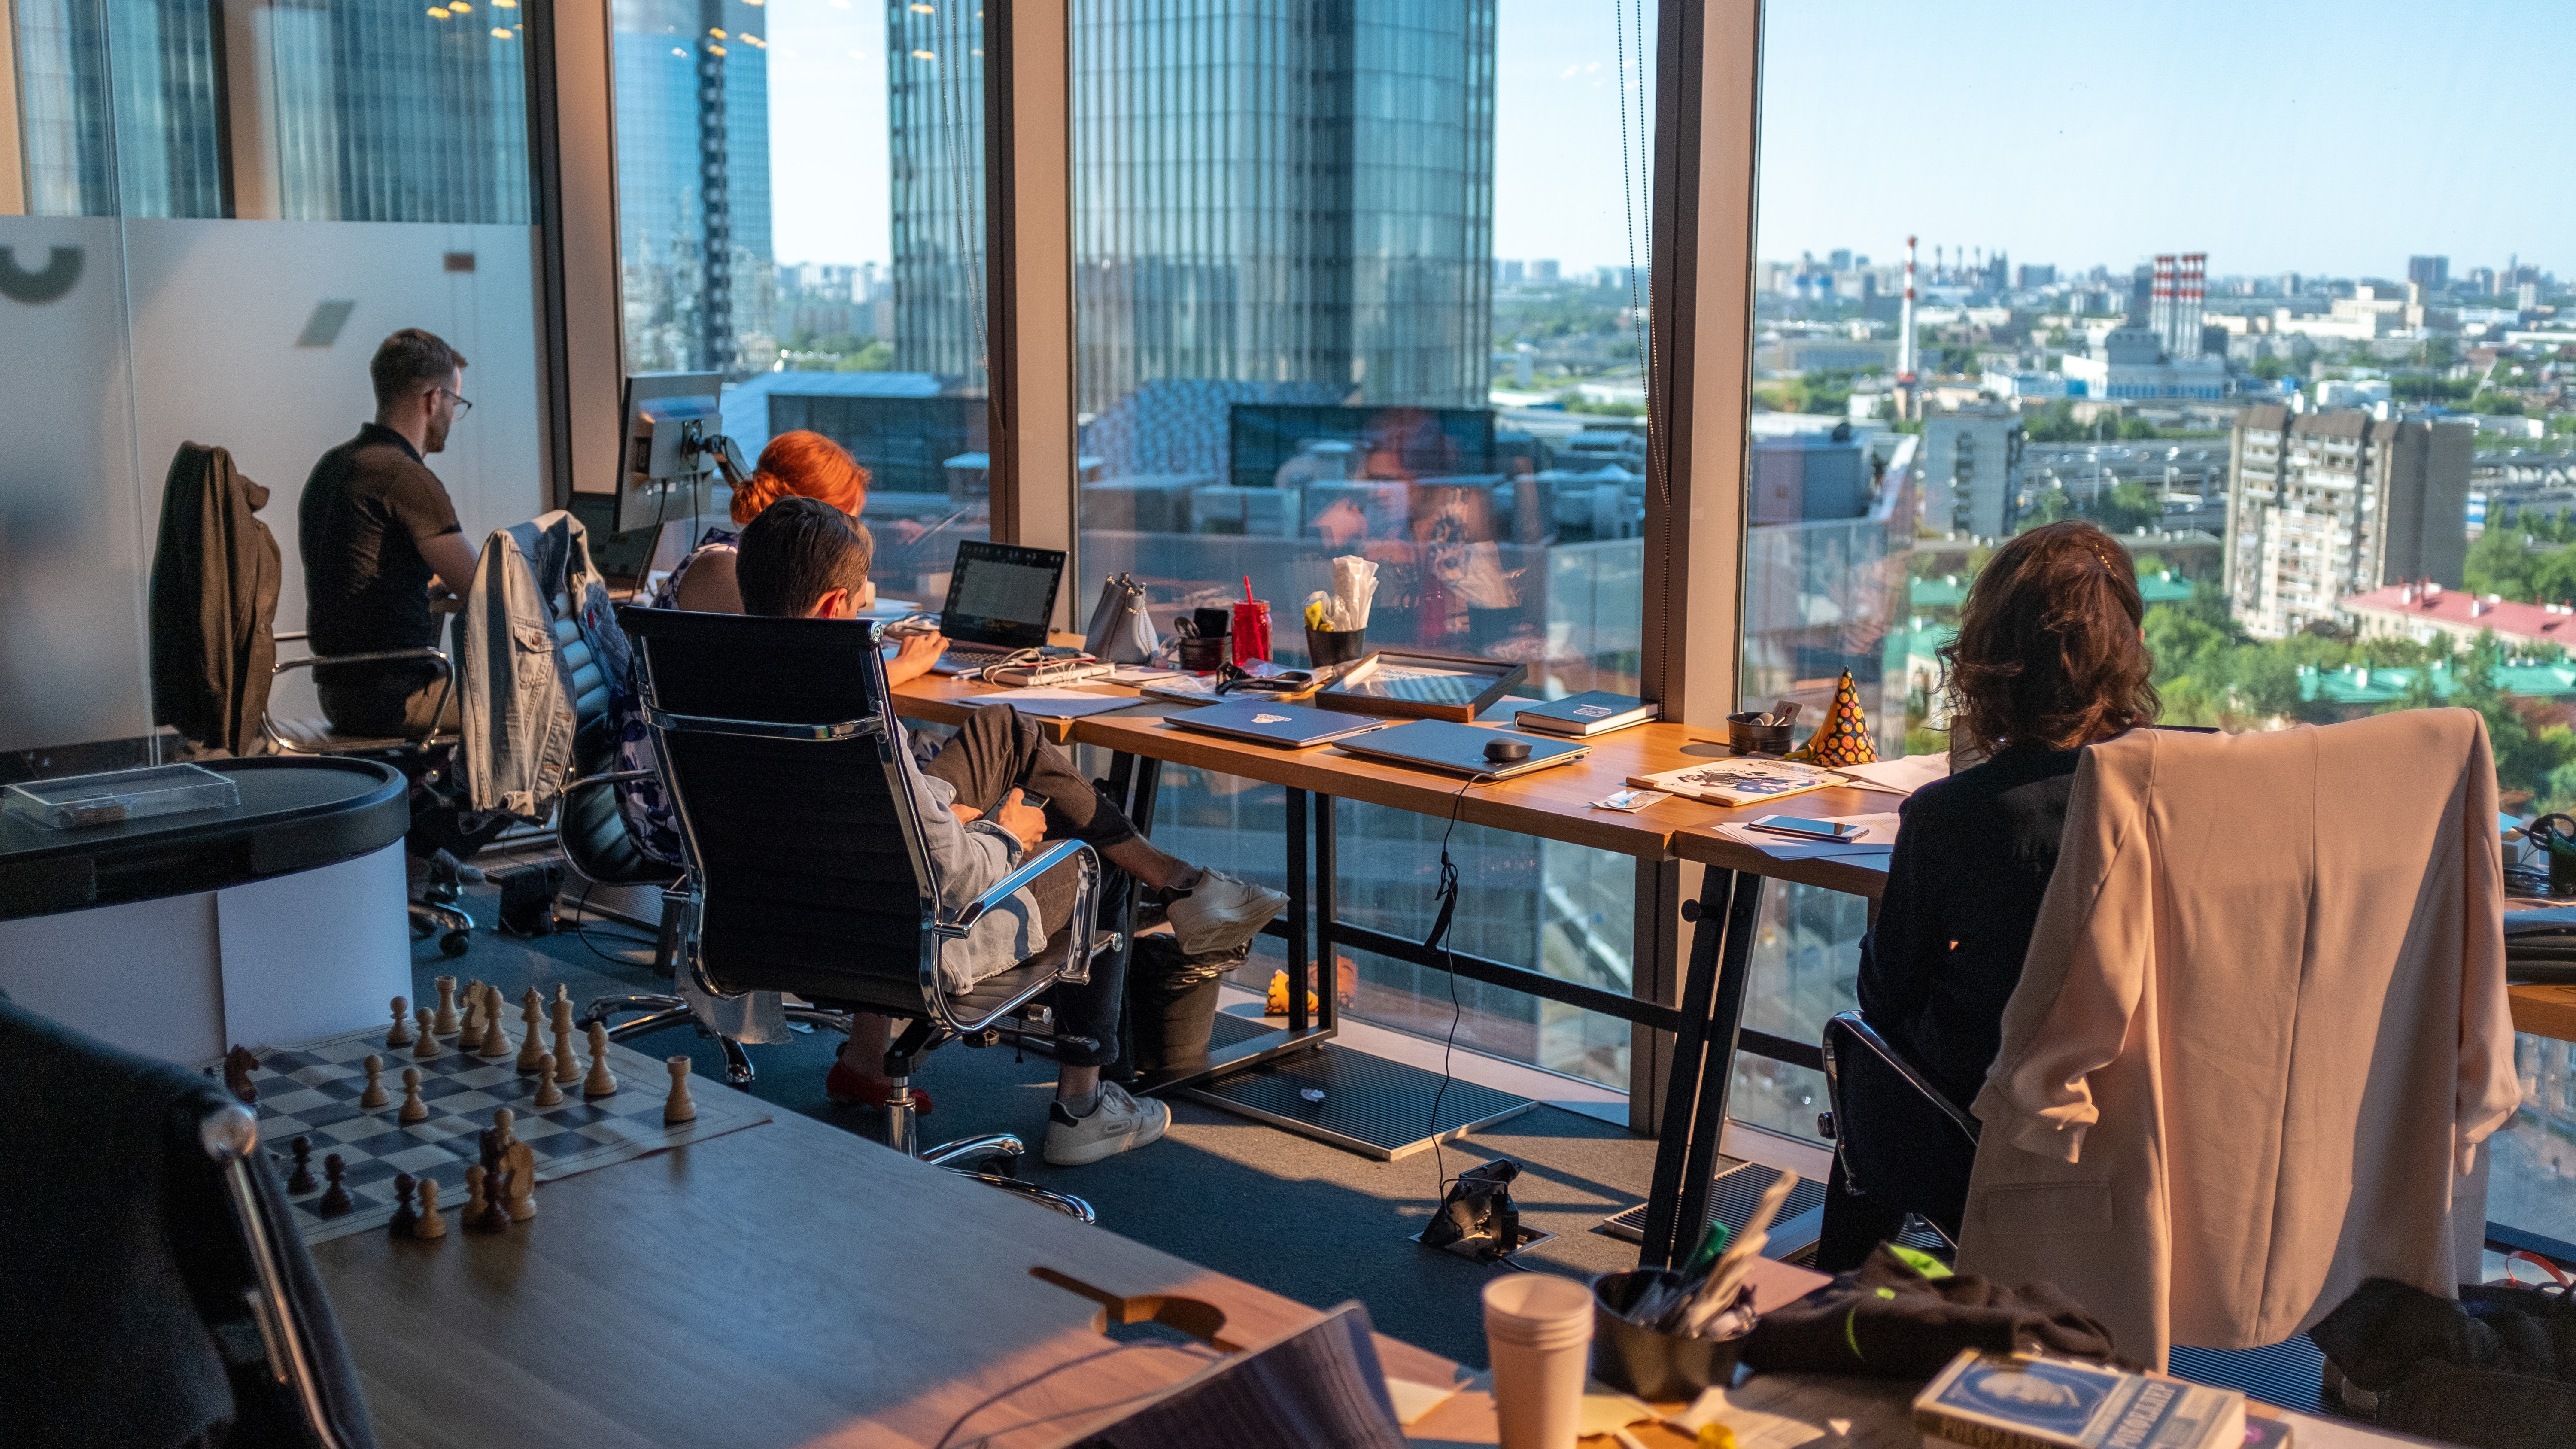 view from inside an office showing people working with large windows providing city views